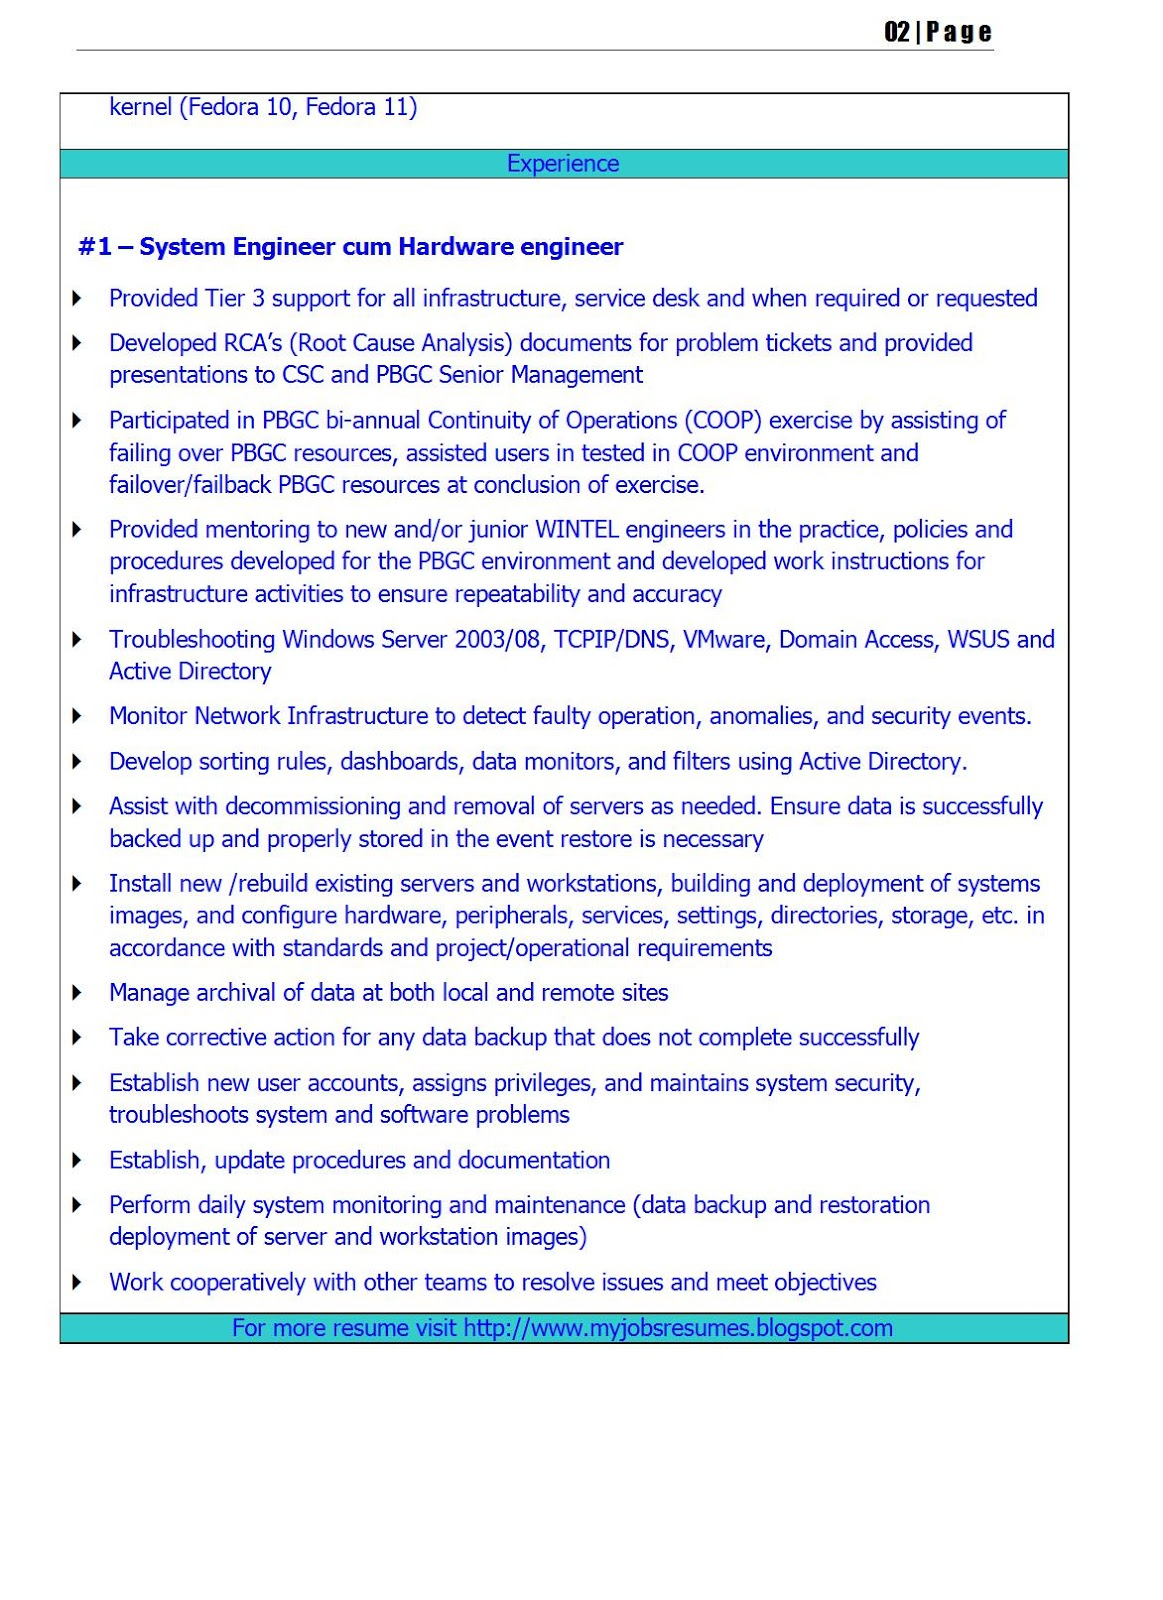 resume samples for net developer 100 original papers www